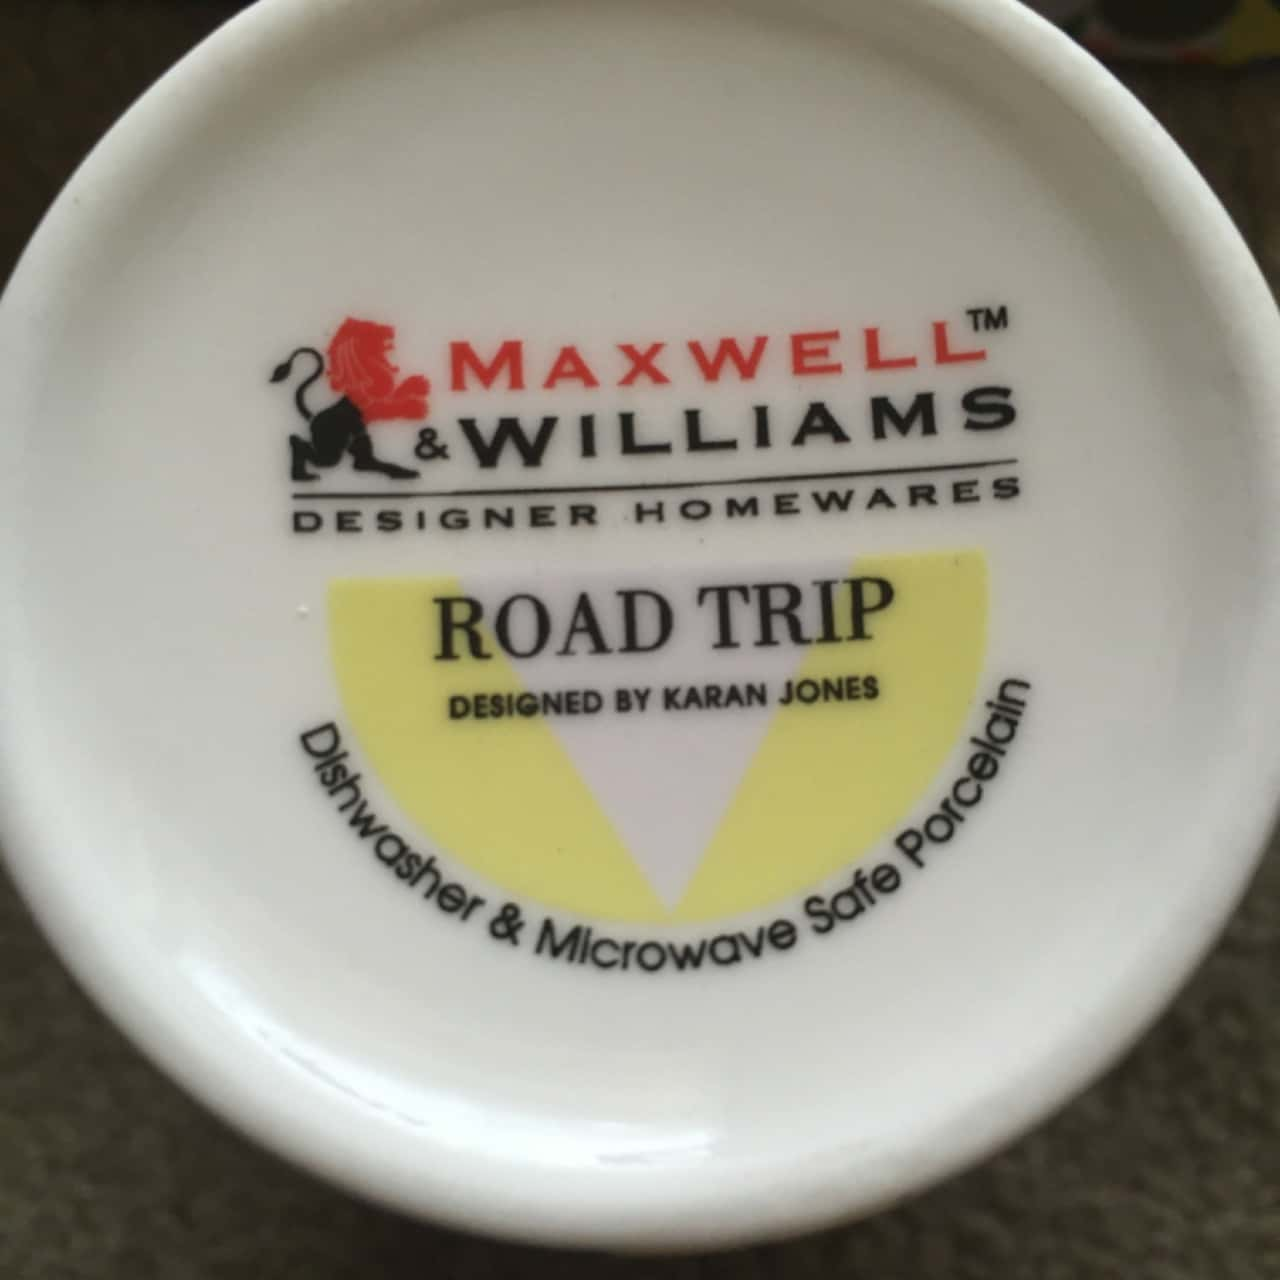 Set of 4 Conical Mugs - Maxwell Williams - Brand New